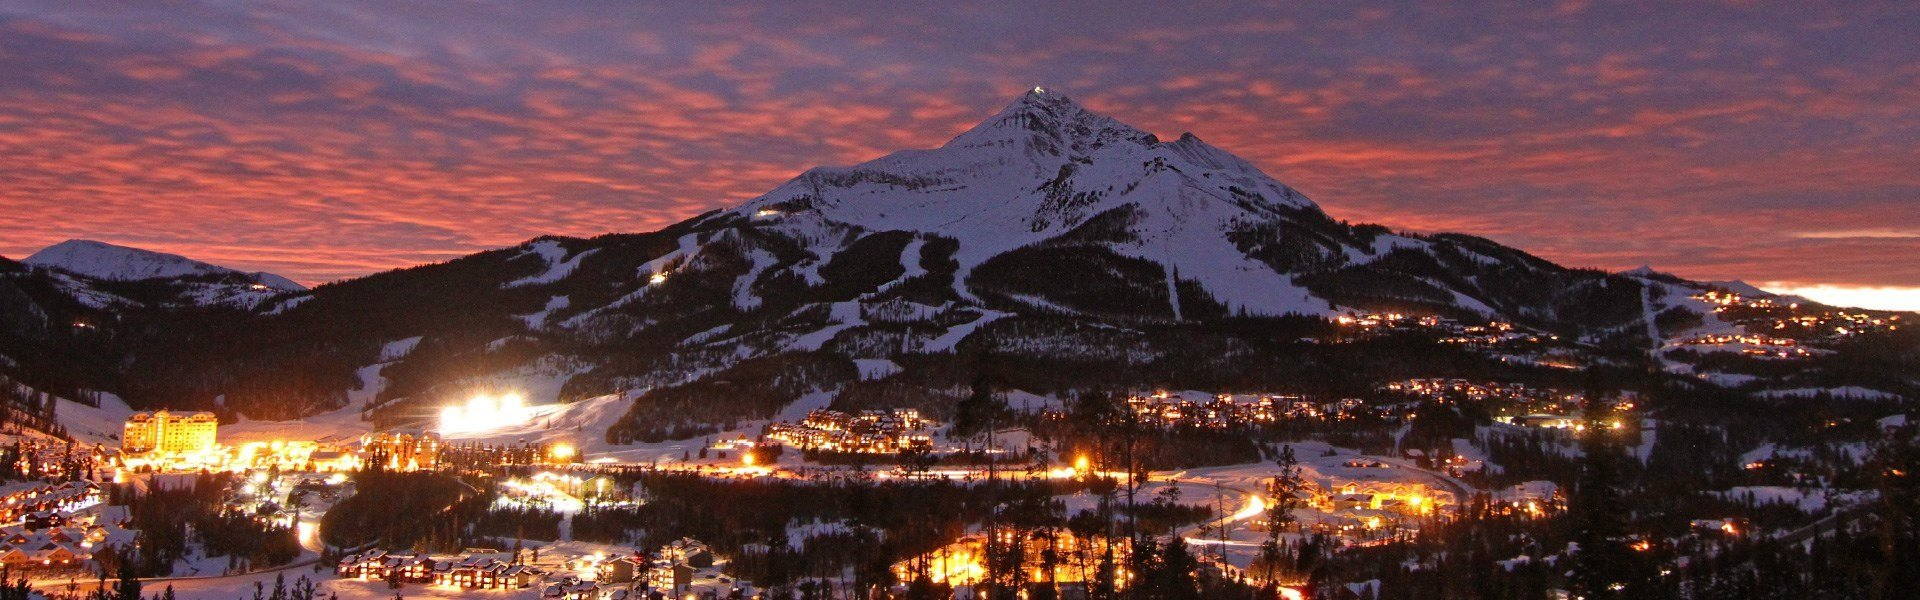 Big Sky Resort opening day is Nov. 23. courtesy of Big Sky Resort